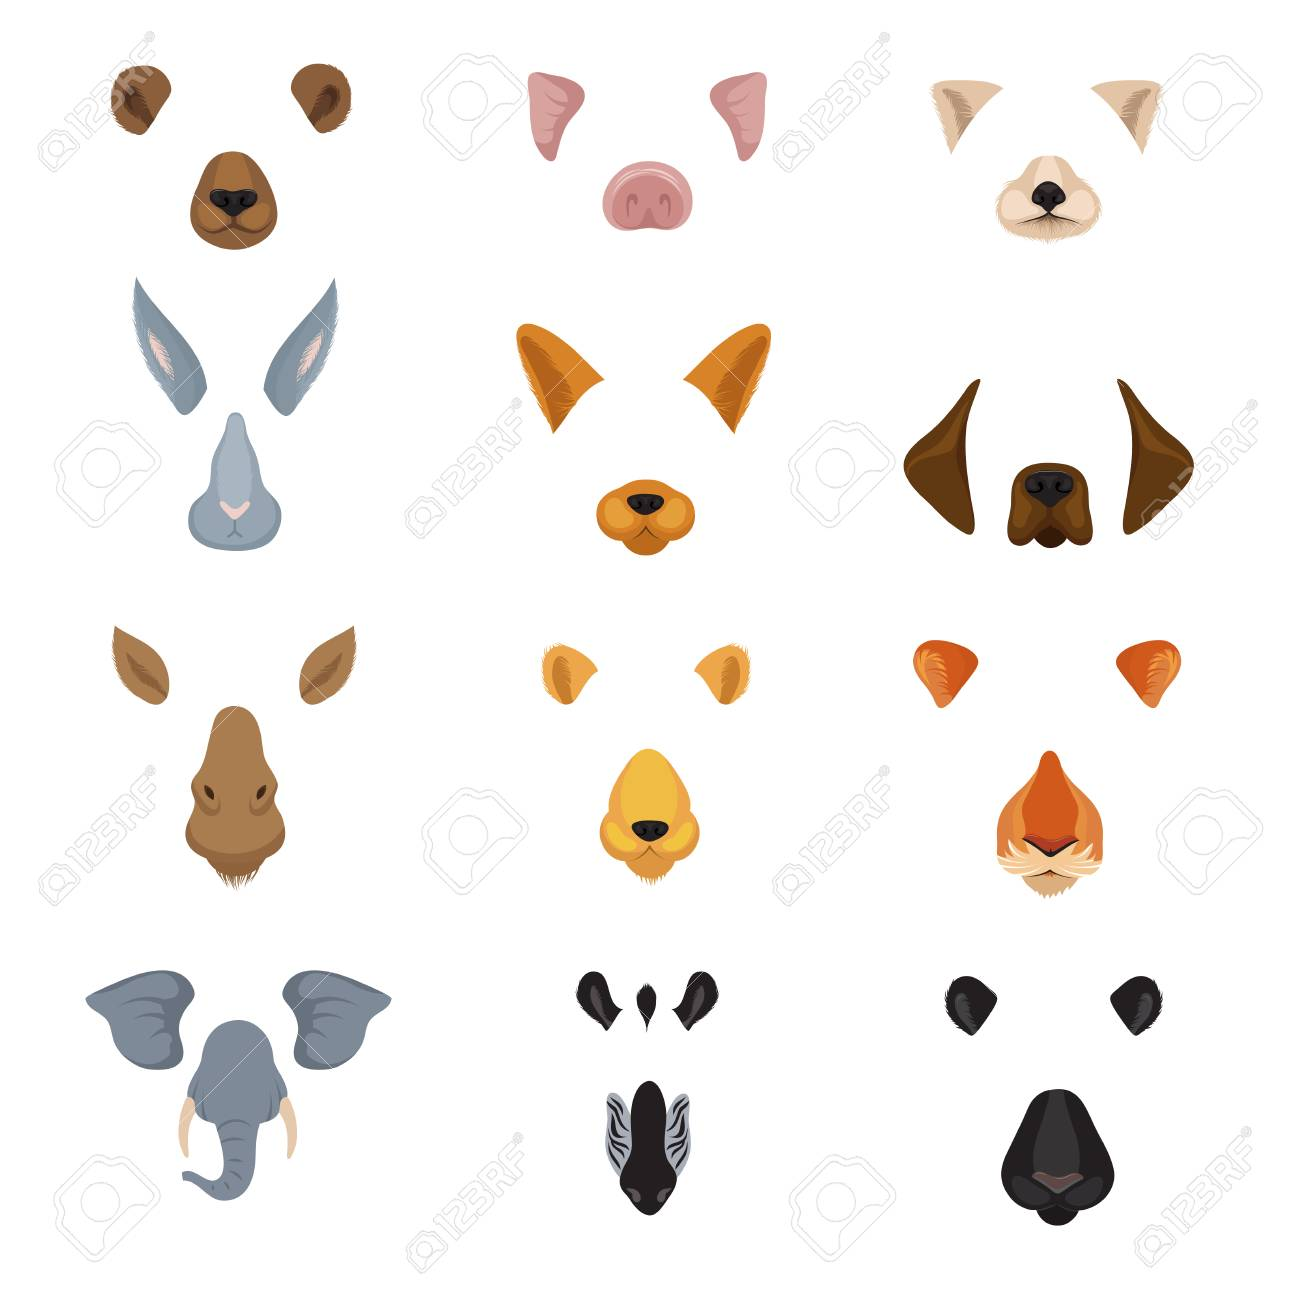 Funny animal faces for phone video chart app  Cartoon animals